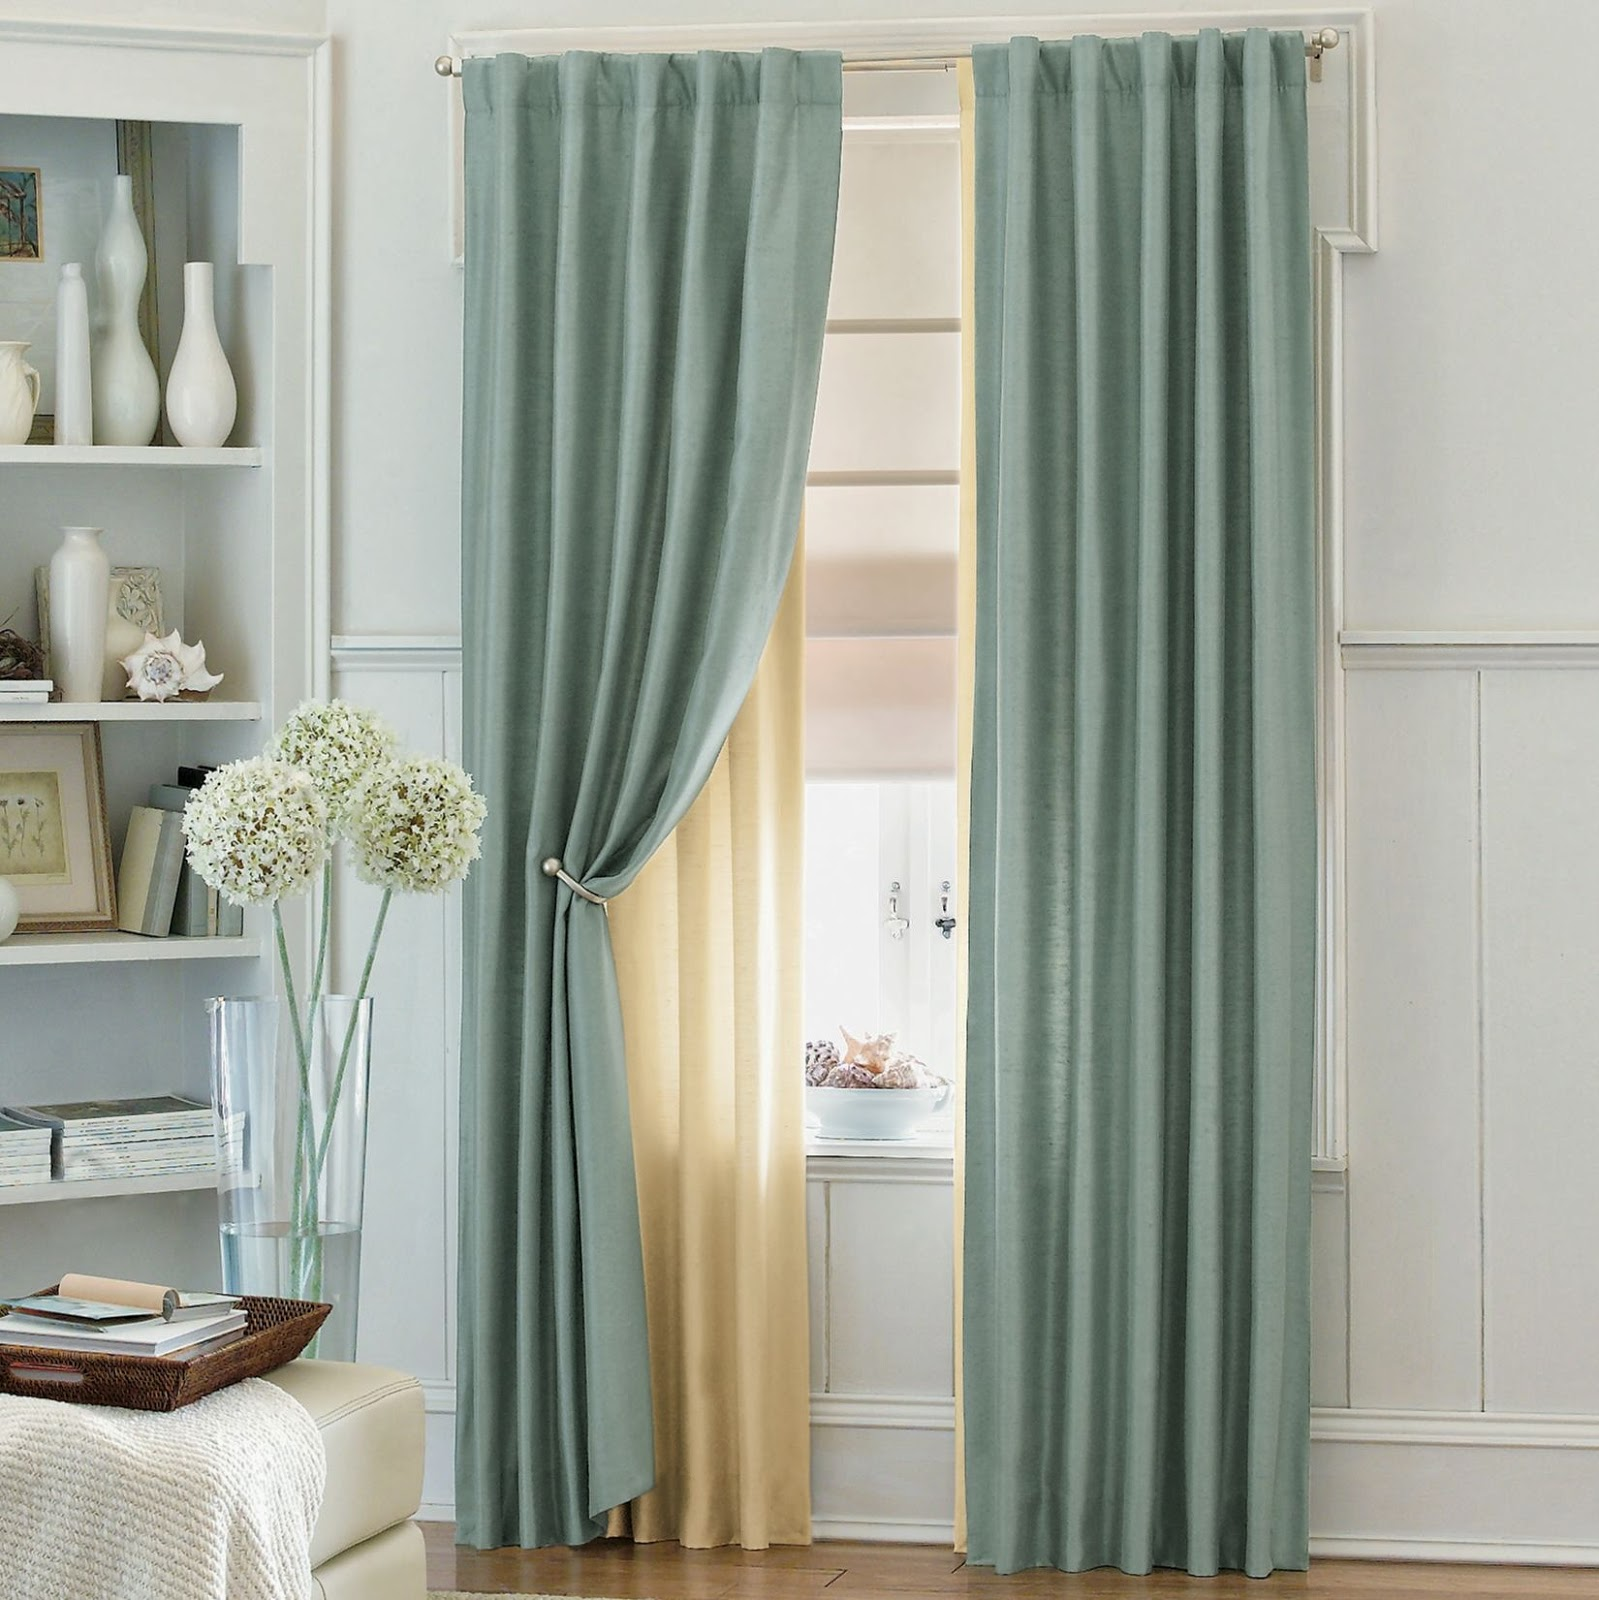 Can Curtains Reduce Noise Black Curtains